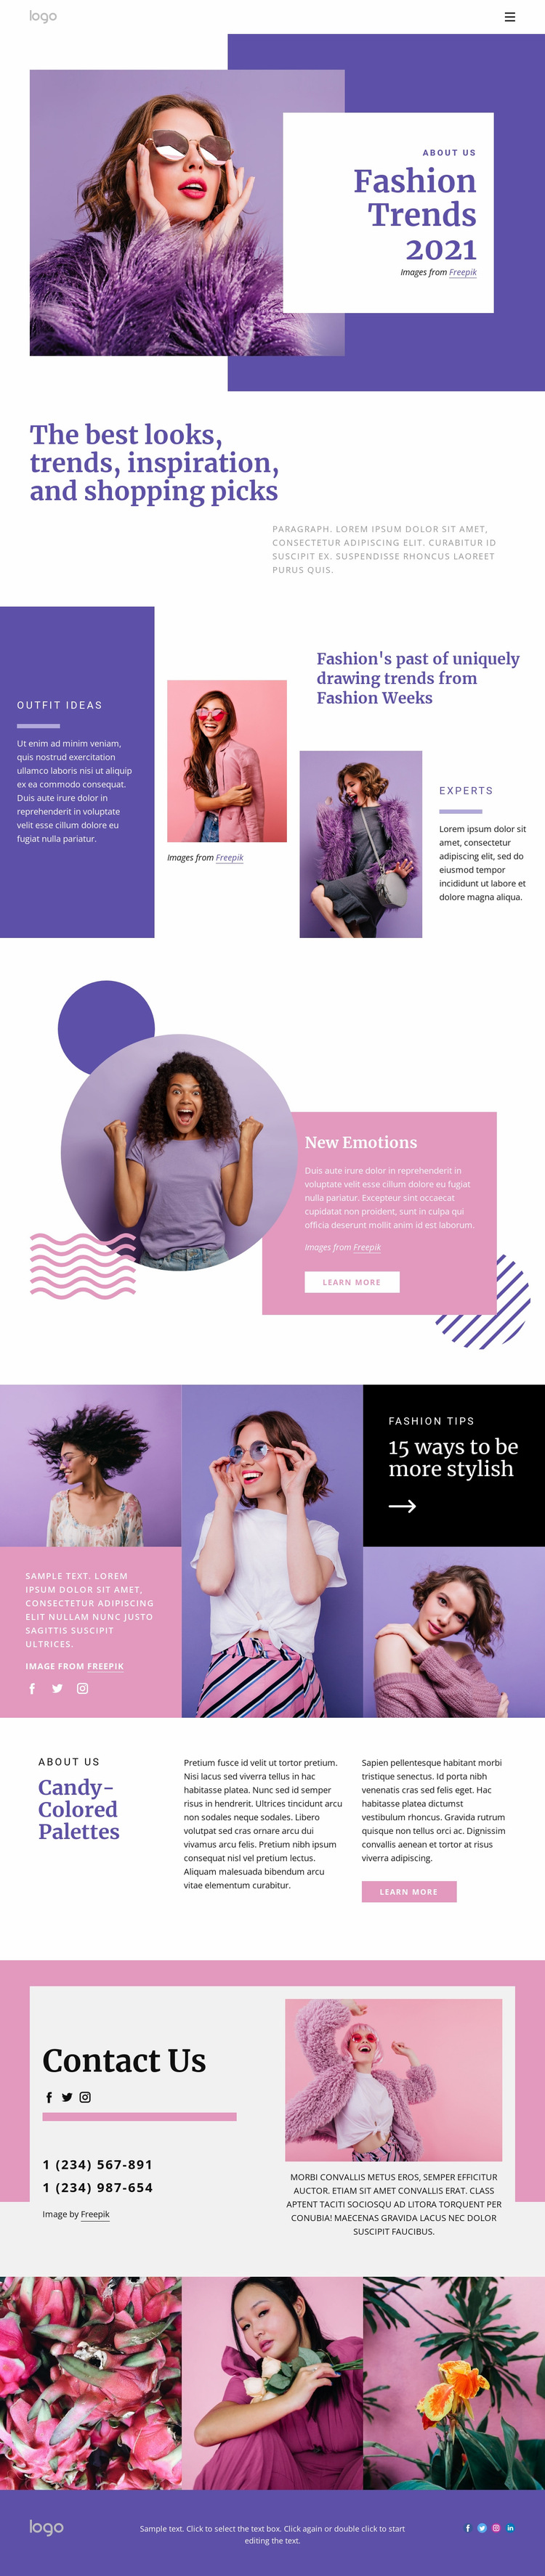 Get the hottest styles Website Builder Templates